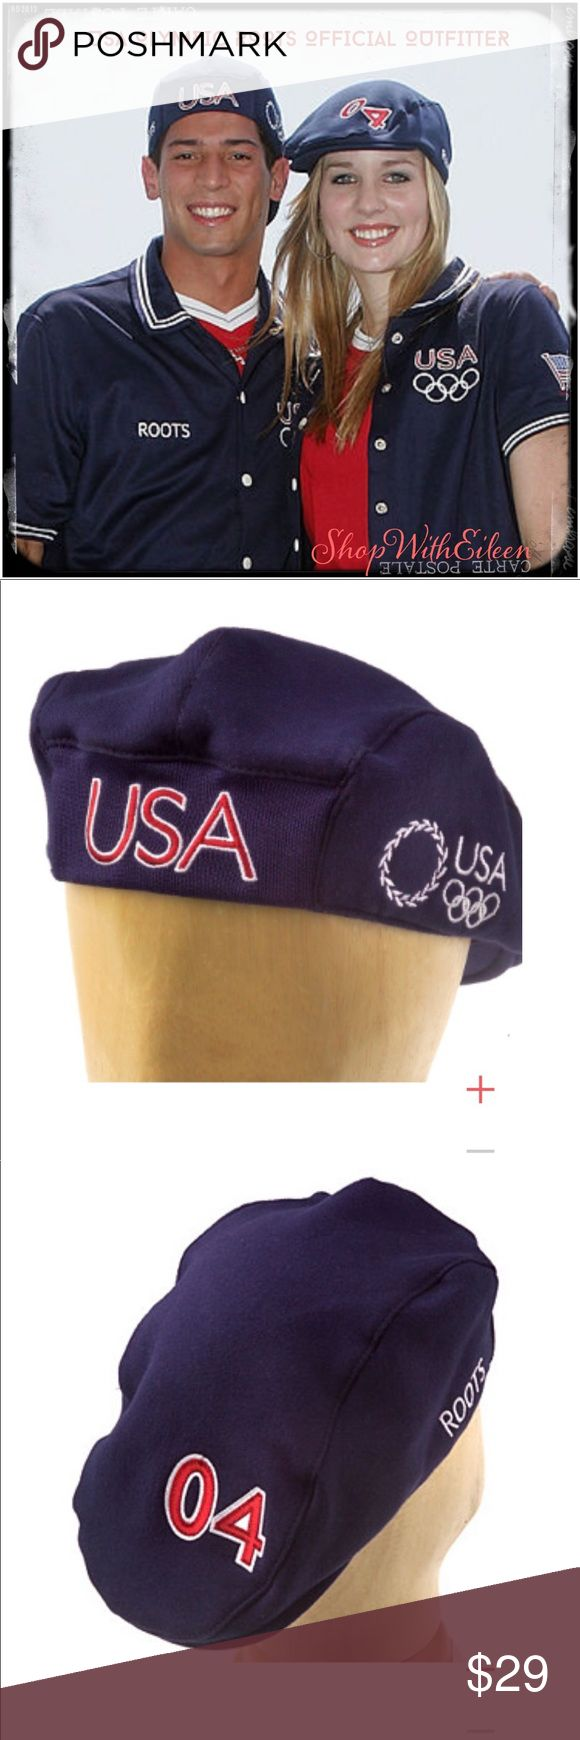 TEAM USA 2004 OLYMPICS Parade Hat By ROOTS USA OLYMPICS ROOTS 2004 Parade HAT  🇺🇸The front proudly displays an embroidered USA in red & white. Created especially for the Athens Games, the 2004 Look of the Team logo, featuring a wreath USA, & the 5 ring Olympic emblem, is embroidered in white on the left. The right side displays Roots--an official outfitter of the 2004 US Olympic team--stitched in white. To commemorate the Olympic year, a red and white 04 is embroidered on the back. 80%…